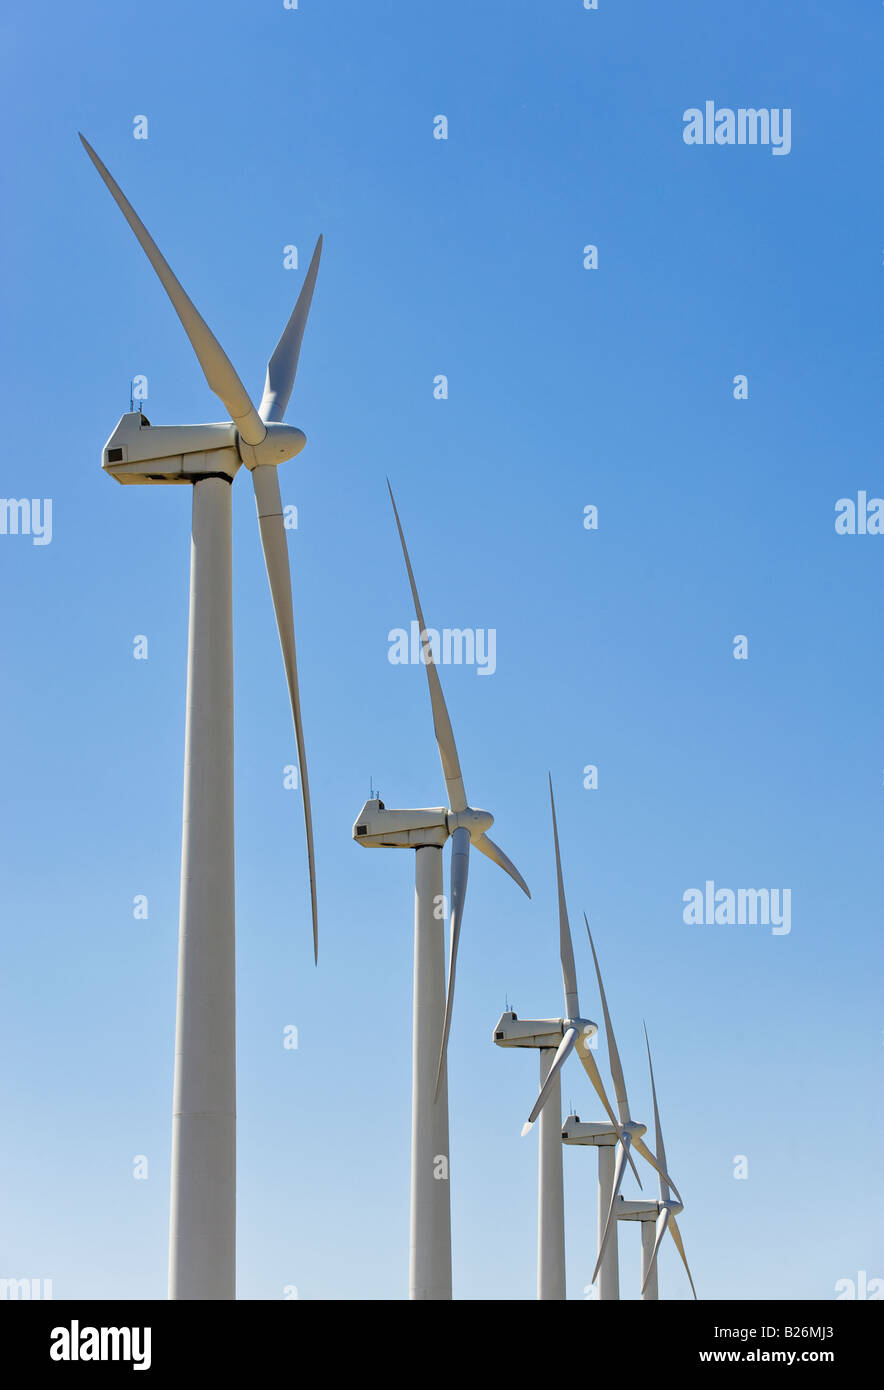 Low angle view of wind turbines - Stock Image